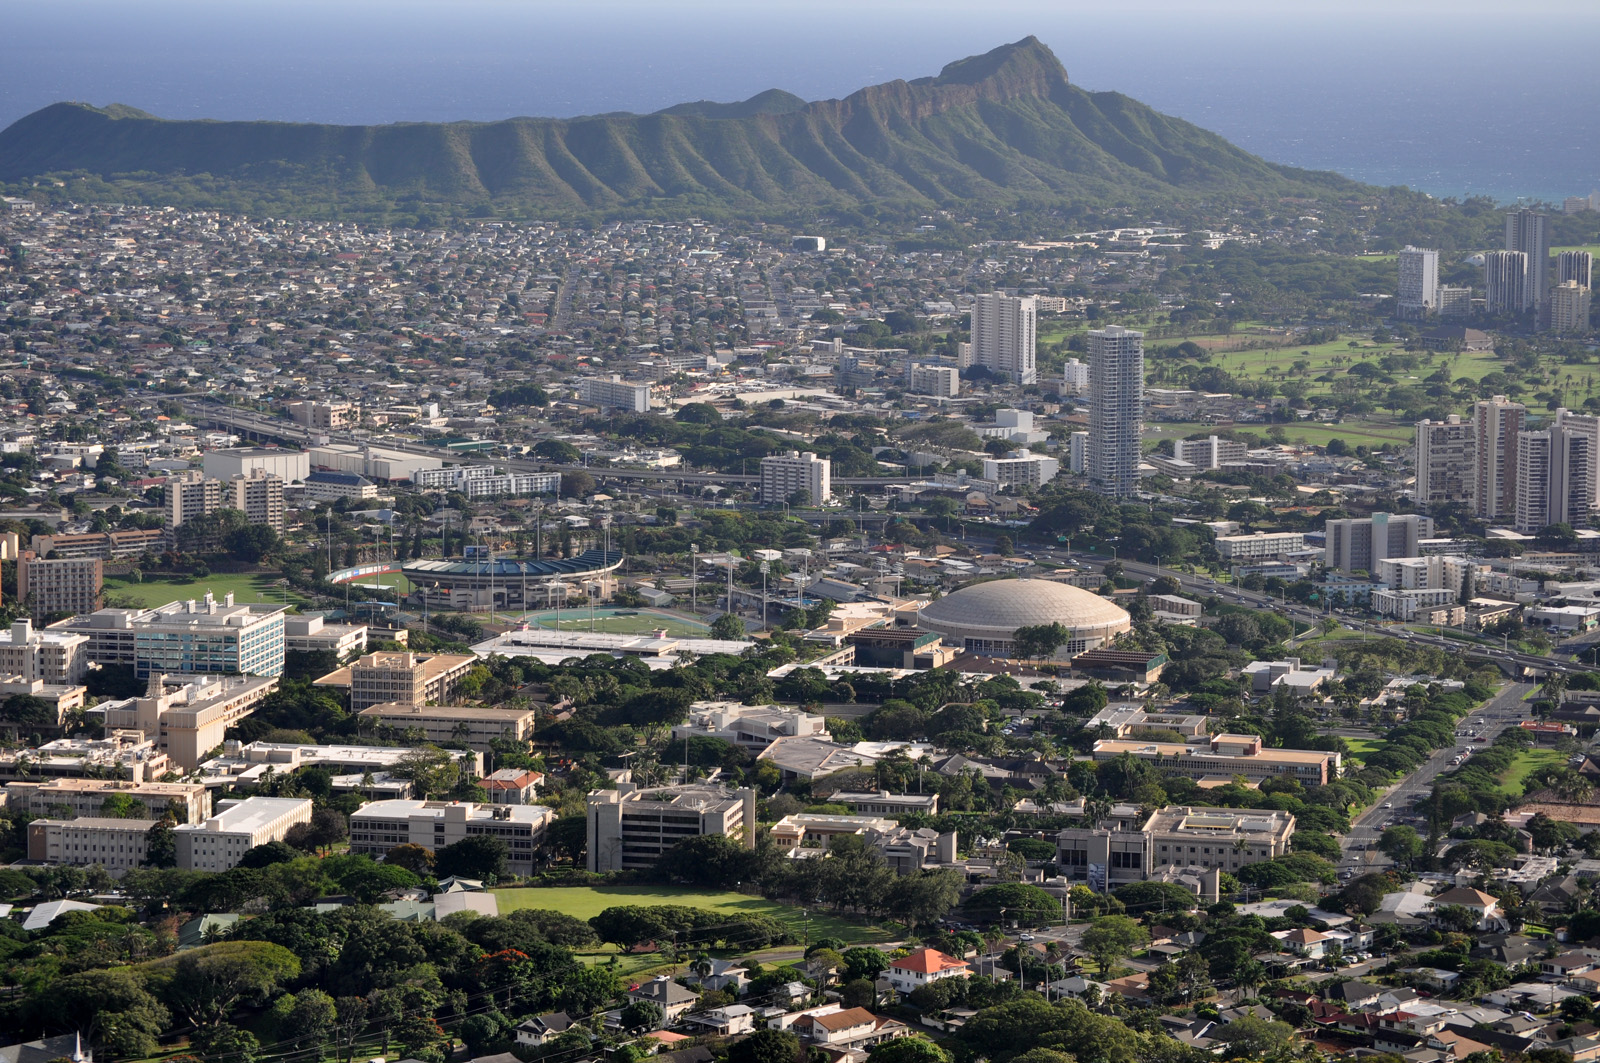 The University of Hawaii campus